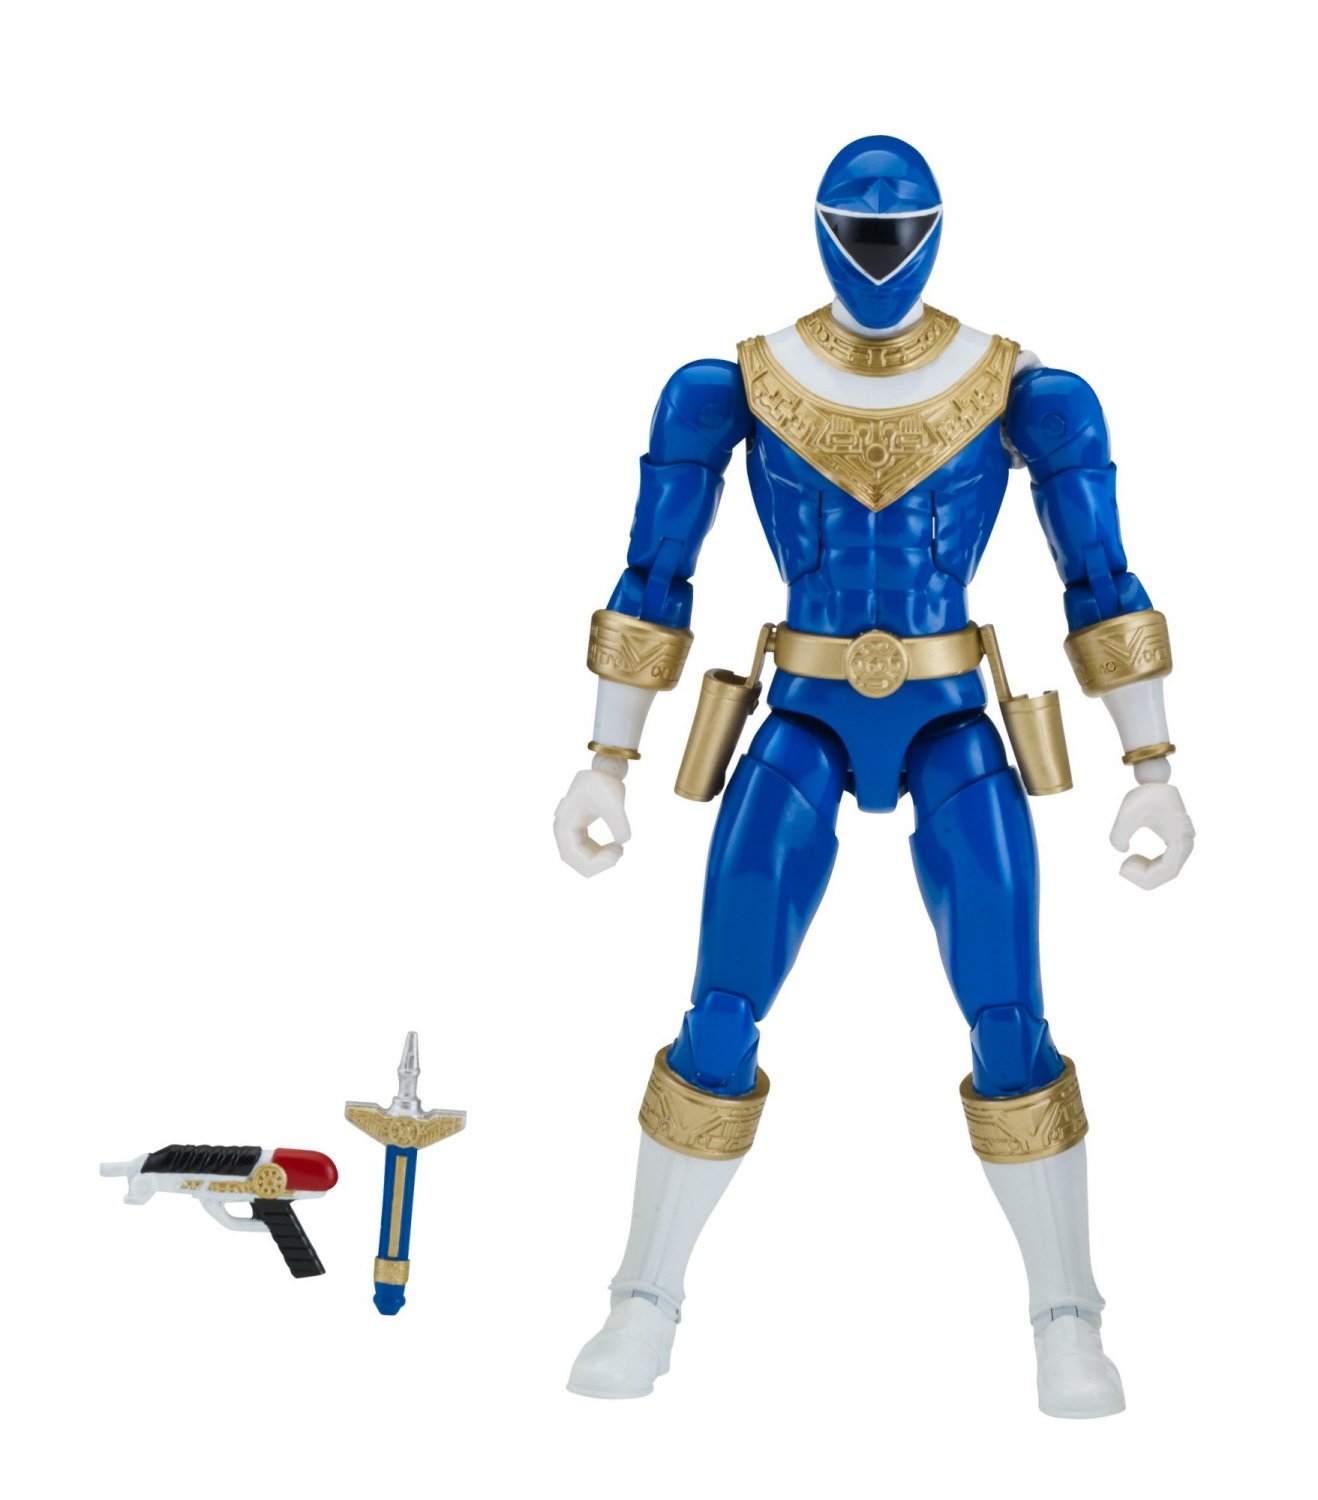 Power Rangers Zeo Action Figure, Blue by Power Rangers (Image #2)